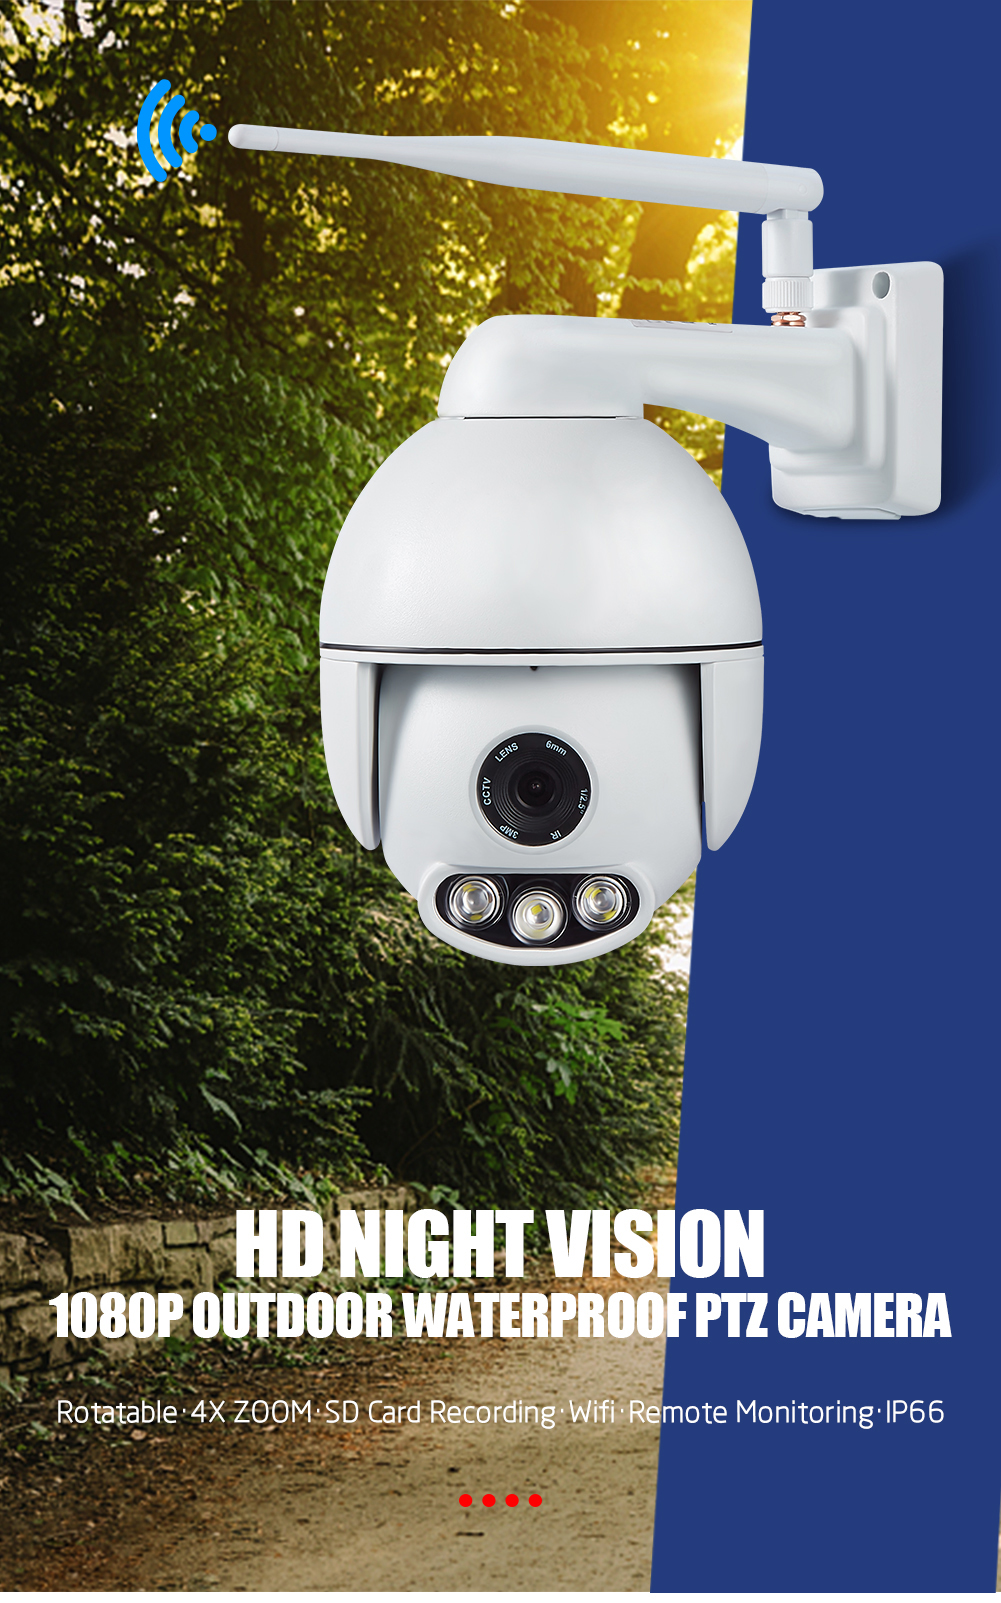 Wanscam K54 Support ONVIF Protocol Outdoor Plug And View IP Camera CCTV